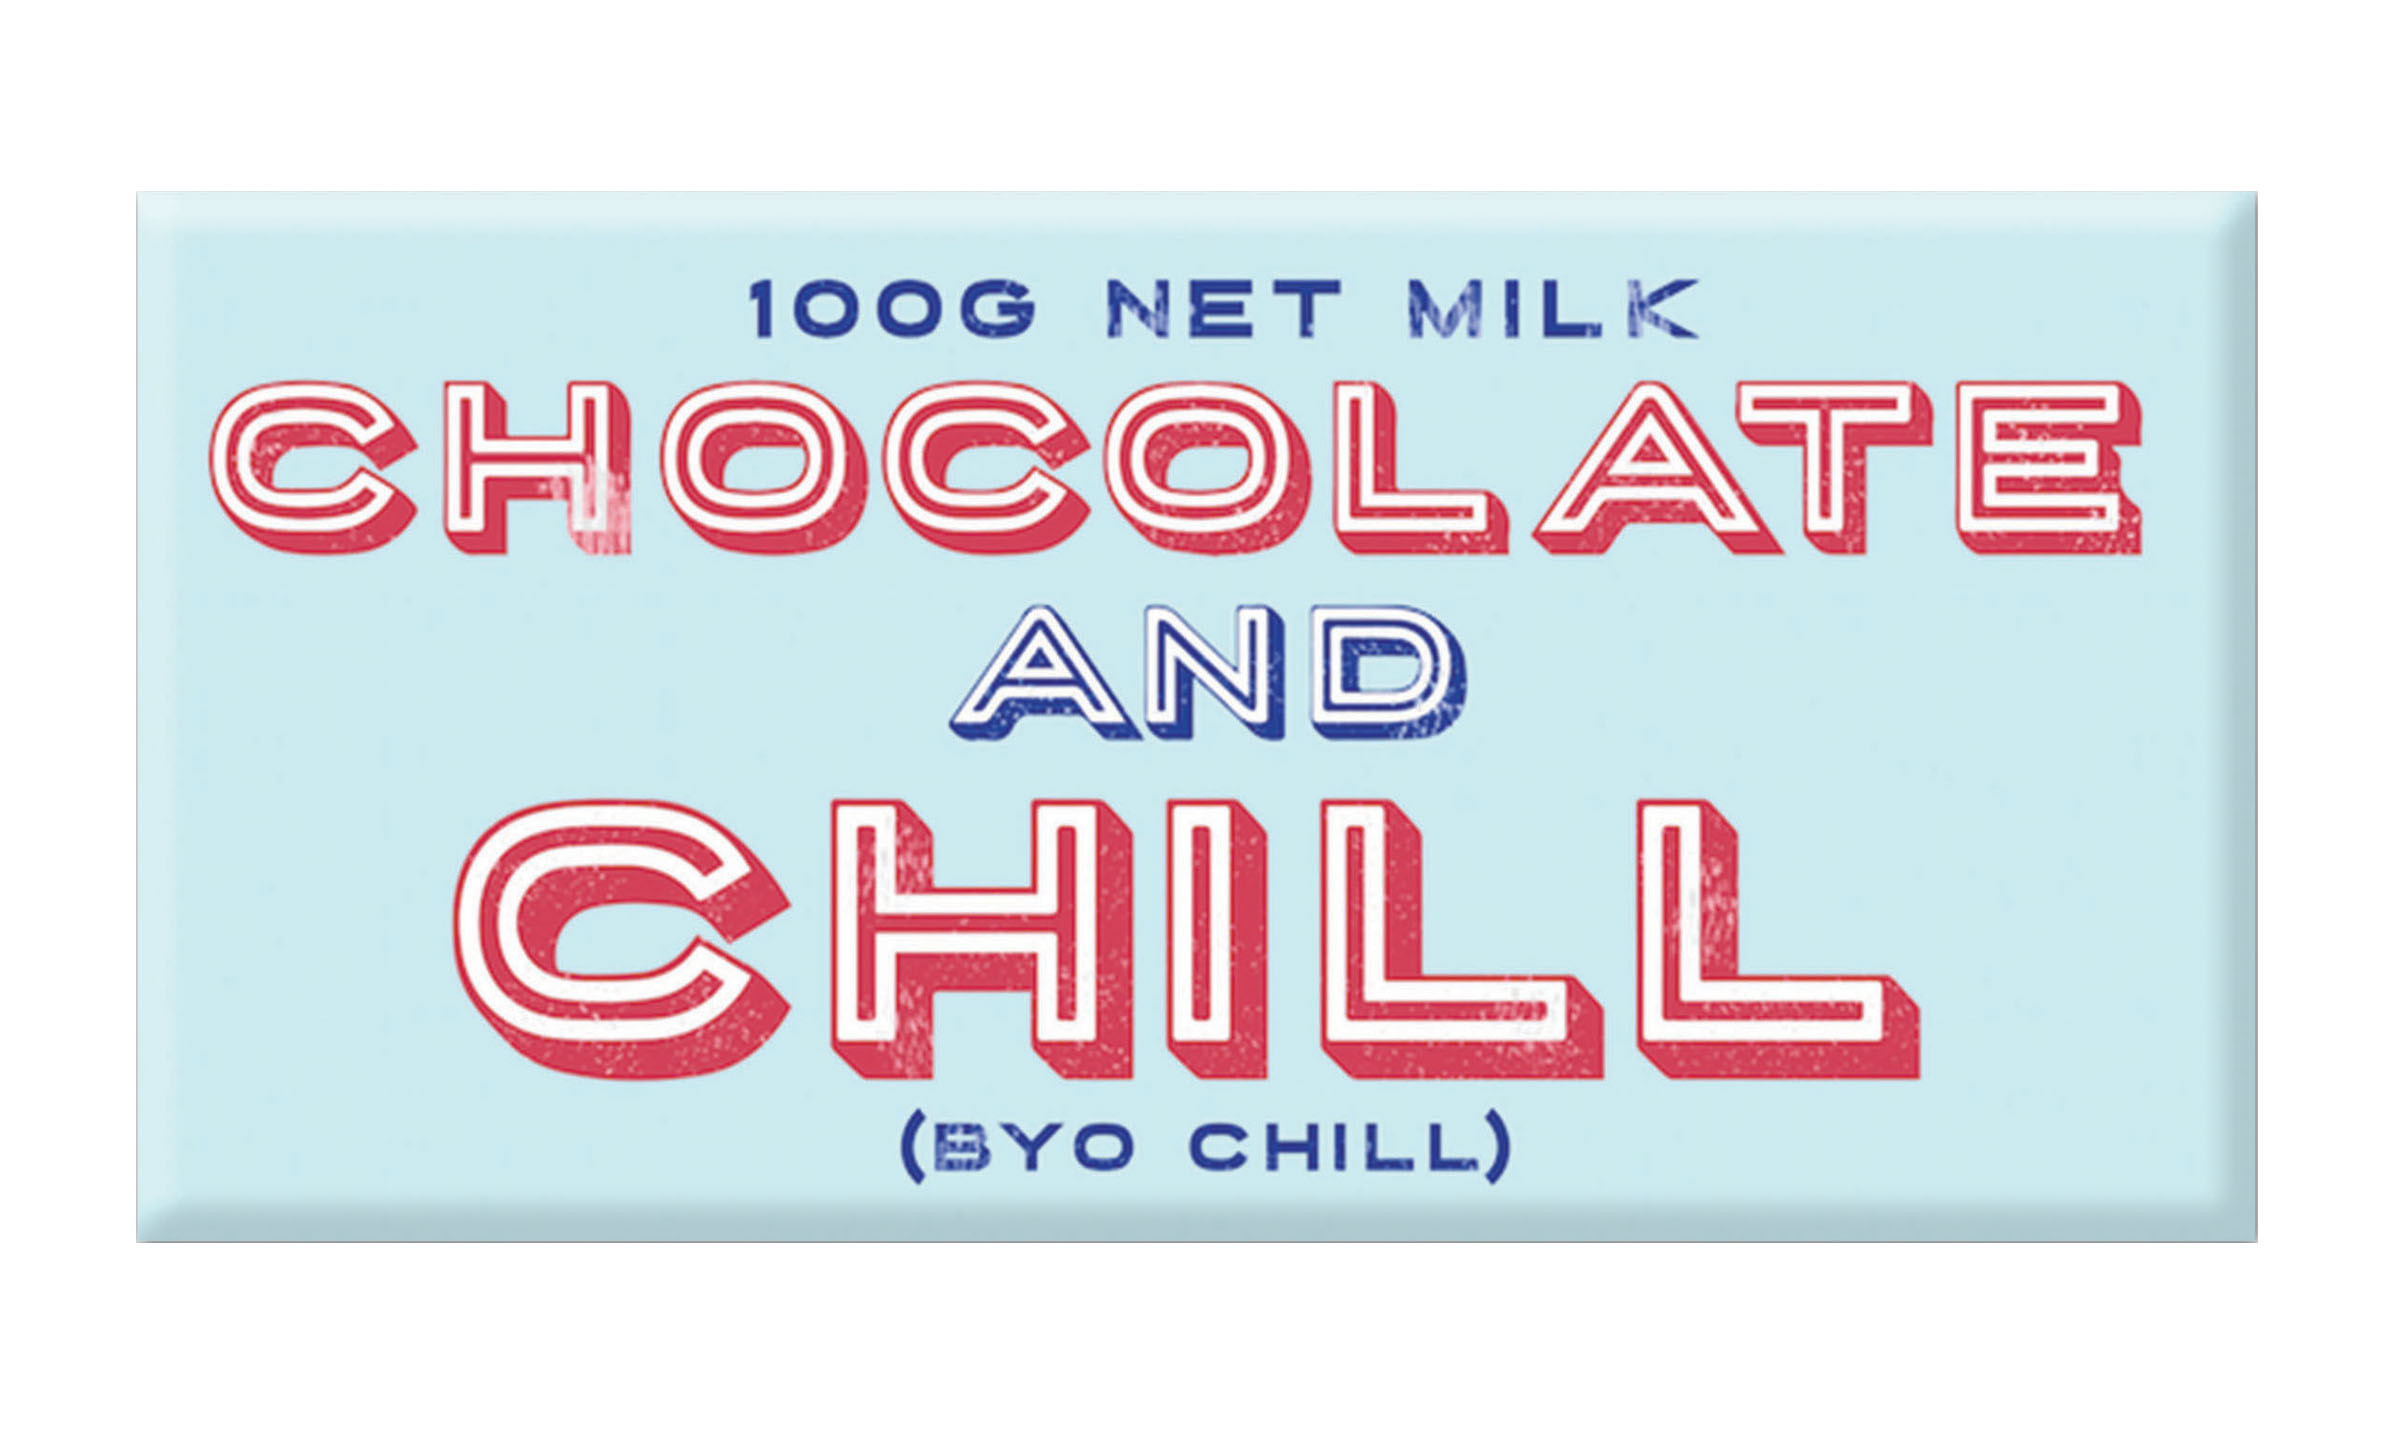 Chocolate and Chill